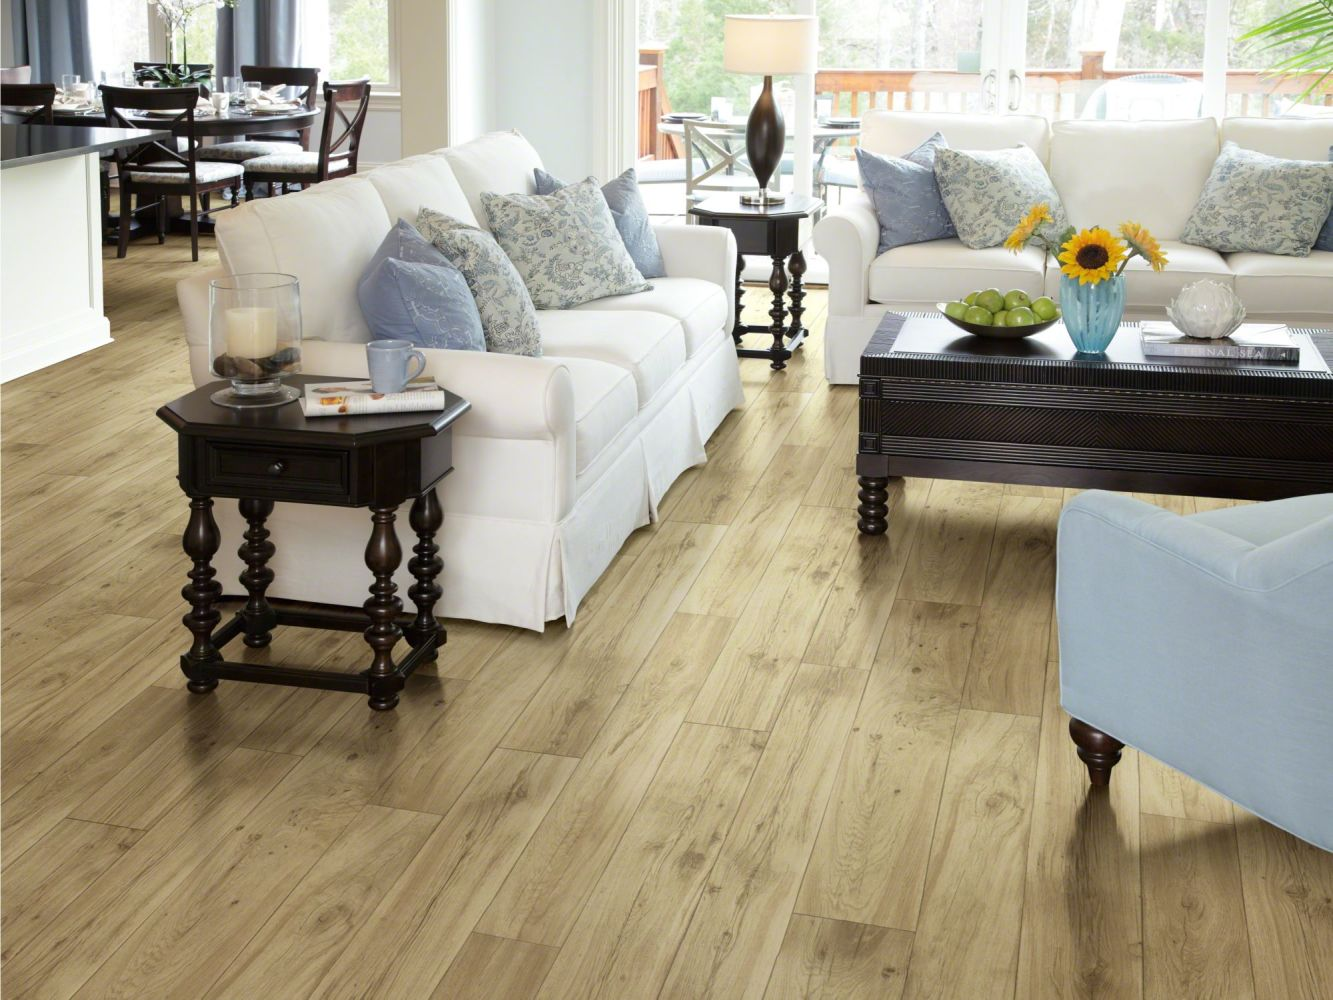 Shaw Floors Resilient Property Solutions Compact 12 Surrey 00113_VG061